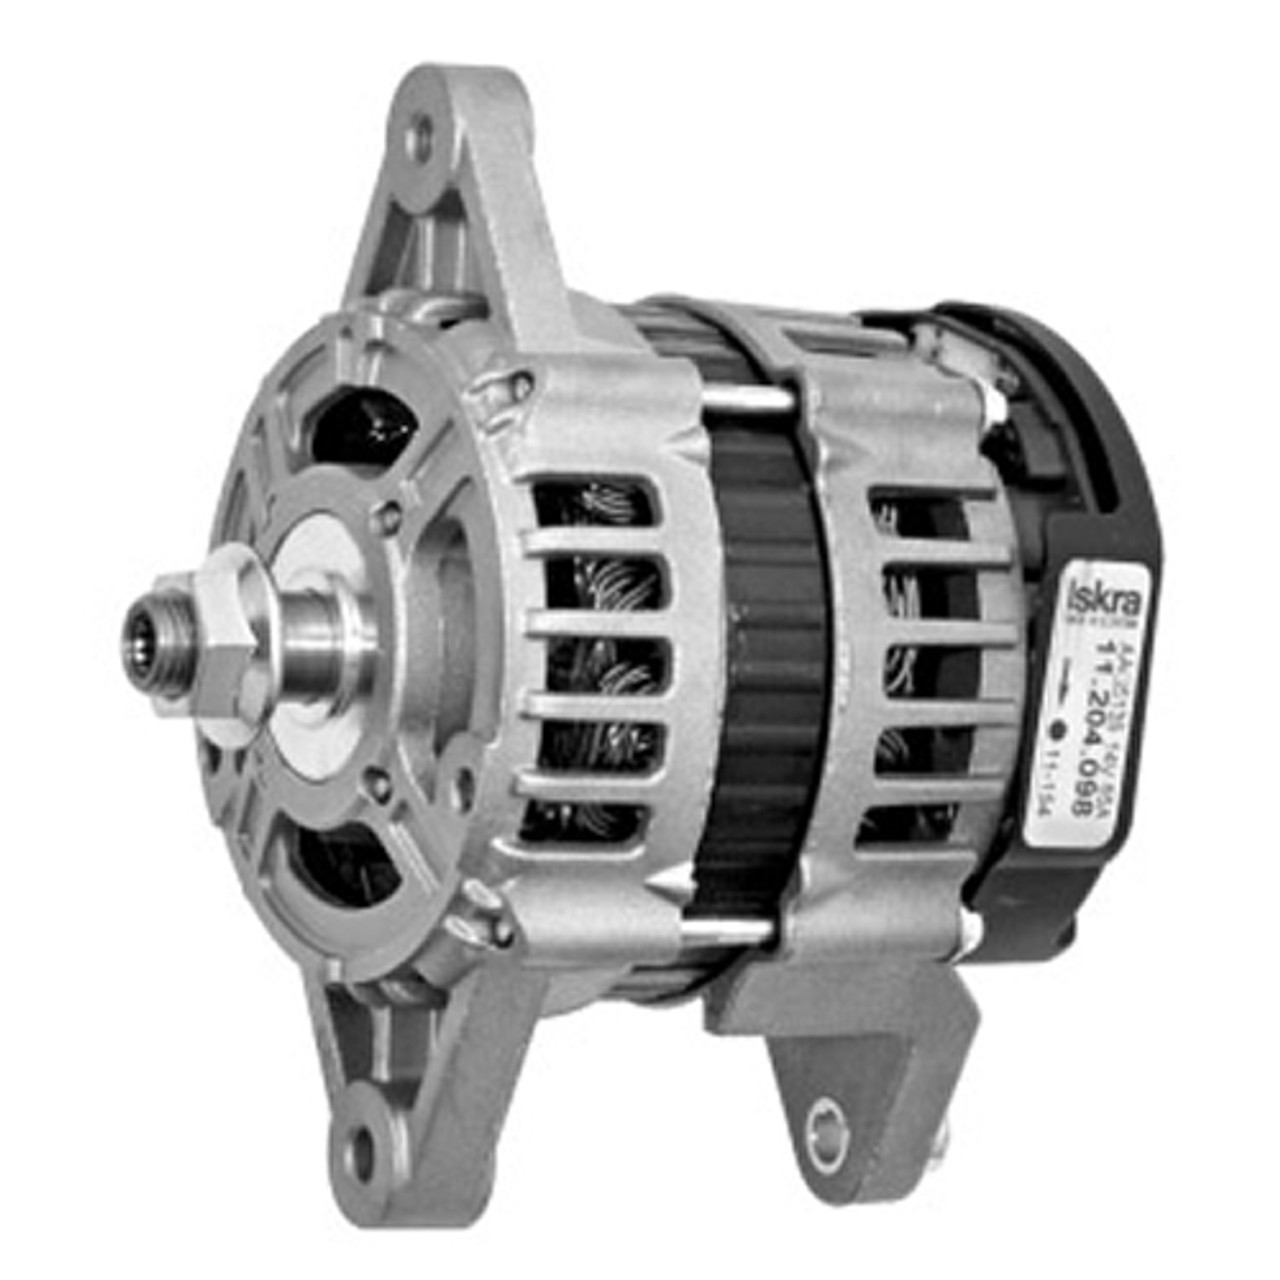 hight resolution of deutz ag khd l4 3 6 engine letrika alternator mg75